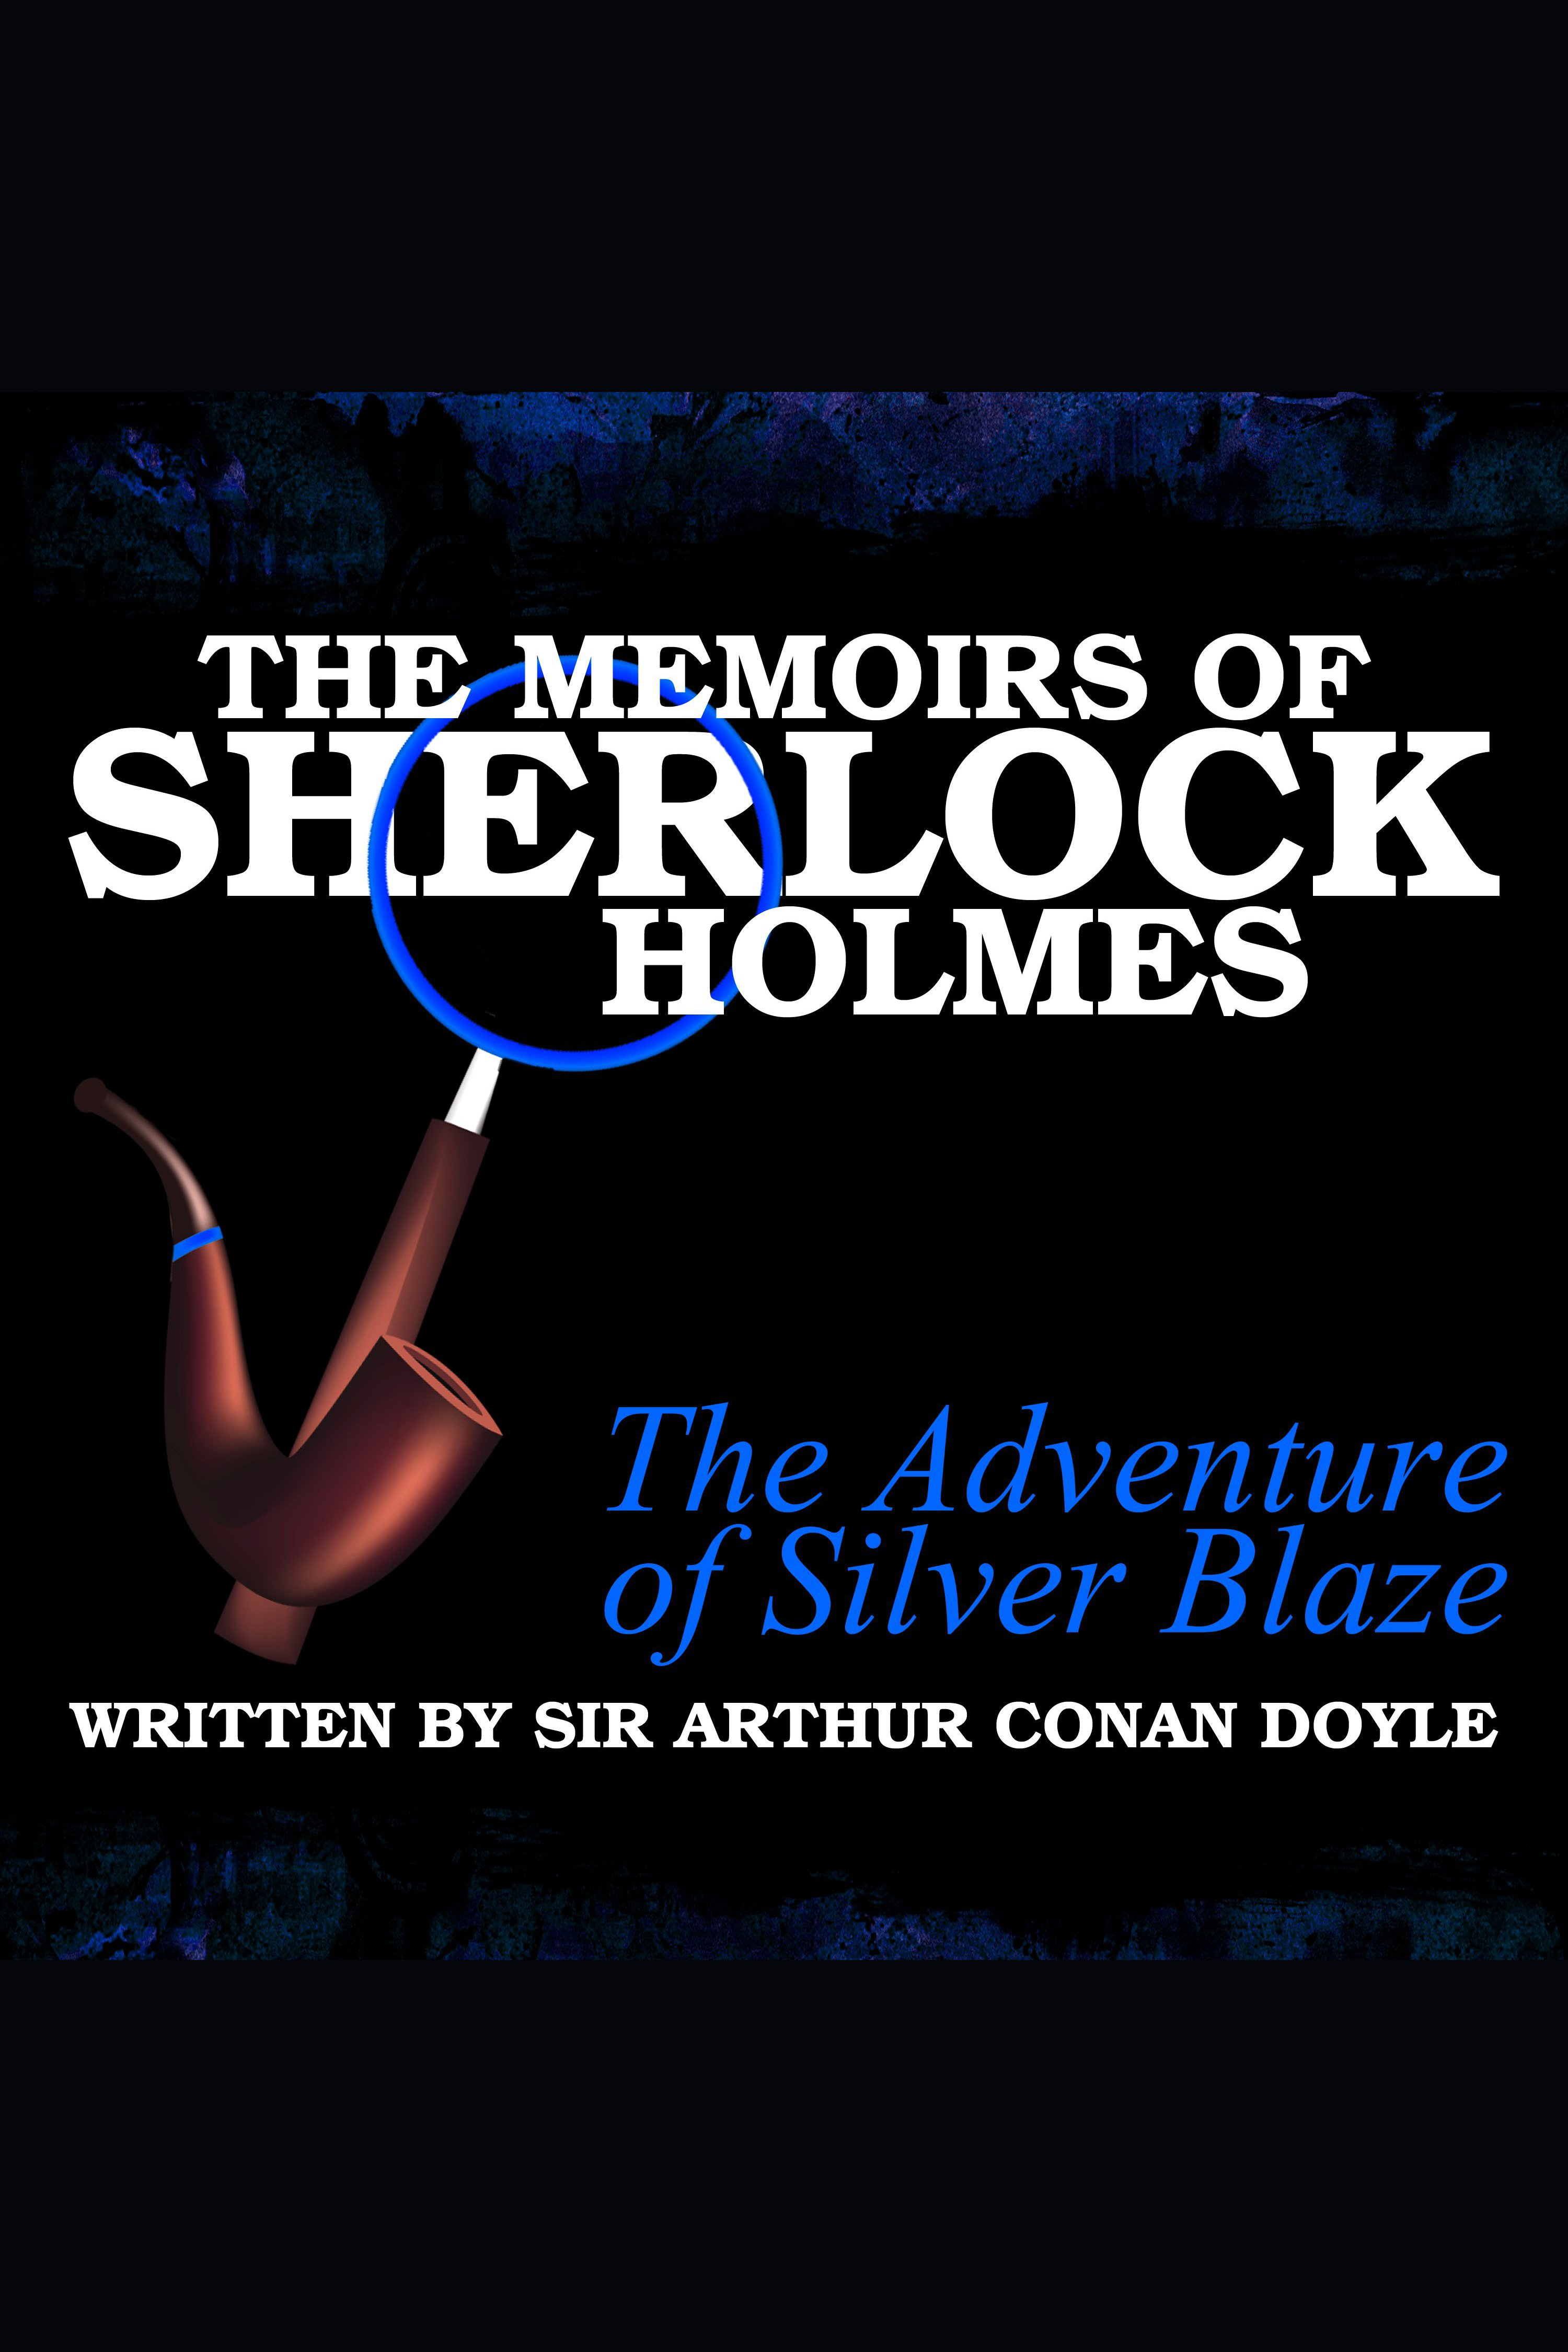 The Memoirs of Sherlock Holmes - The Adventure of Silver Blaze cover image